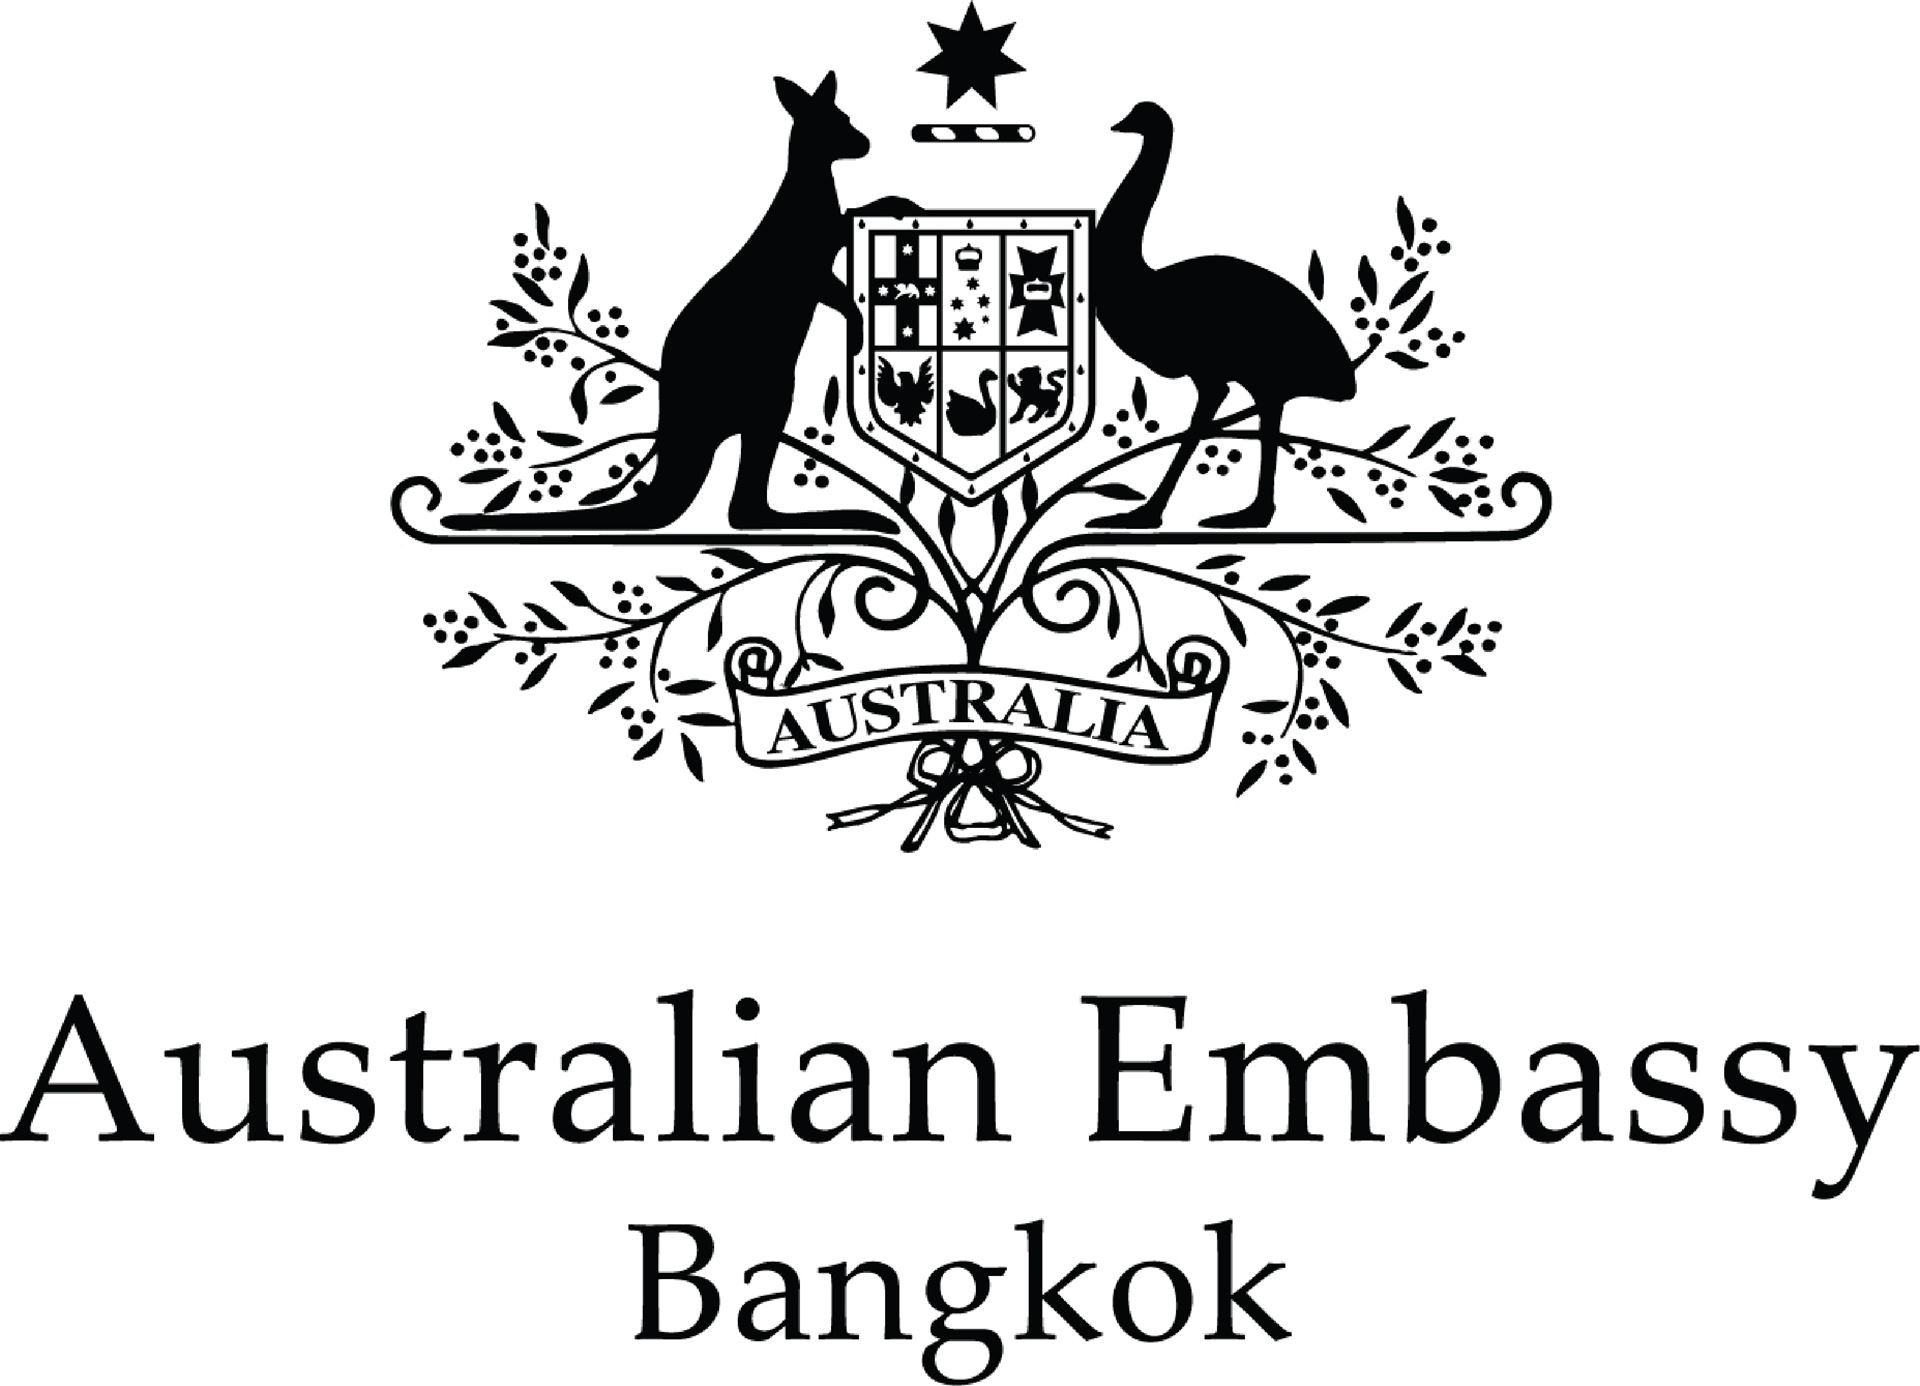 Australian Embassy Bangkok Visa Application Form